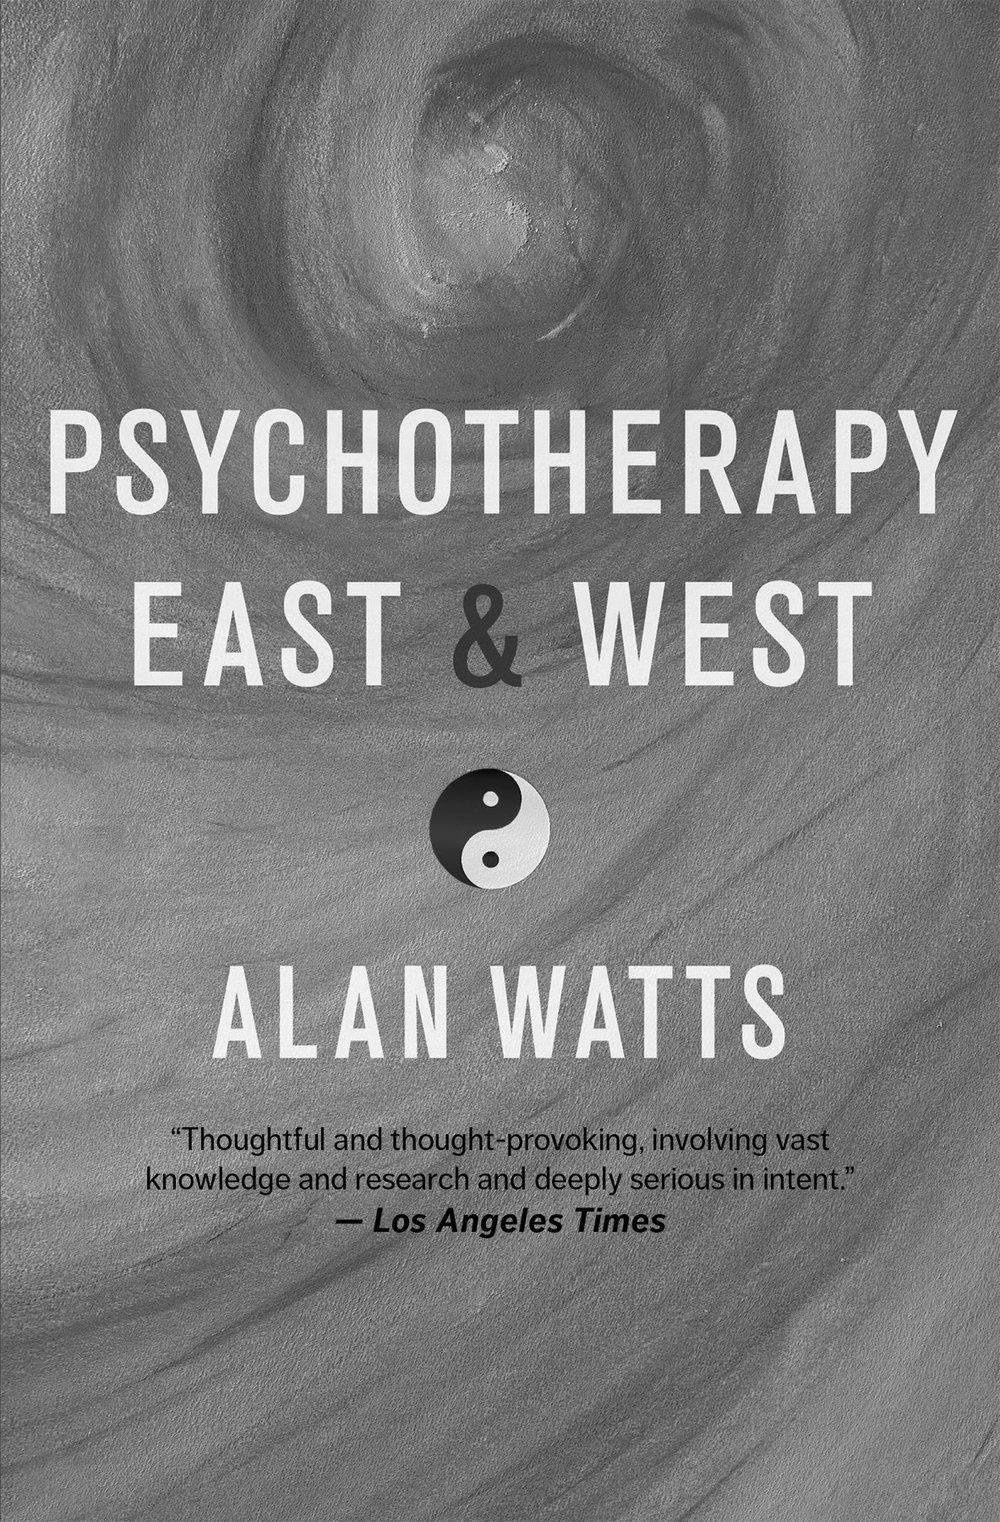 Psychotherapy East & West.jpg